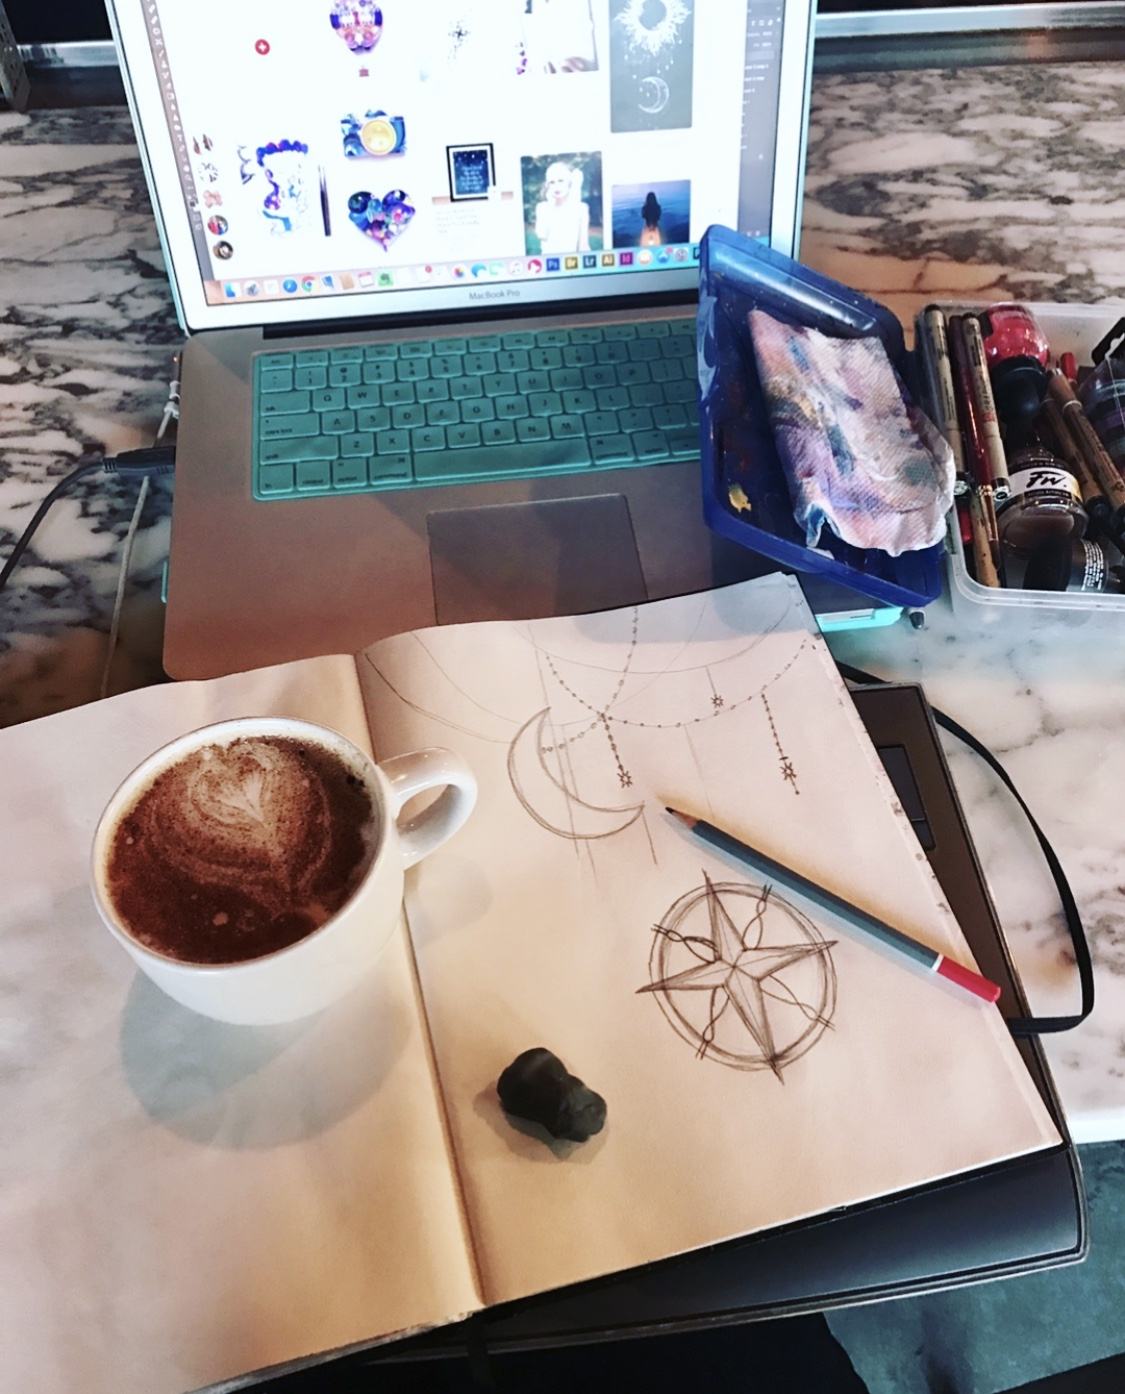 Behind the scenes shot- Chai Tea Latte, Pinterest, and a sketchbook. Bliss.